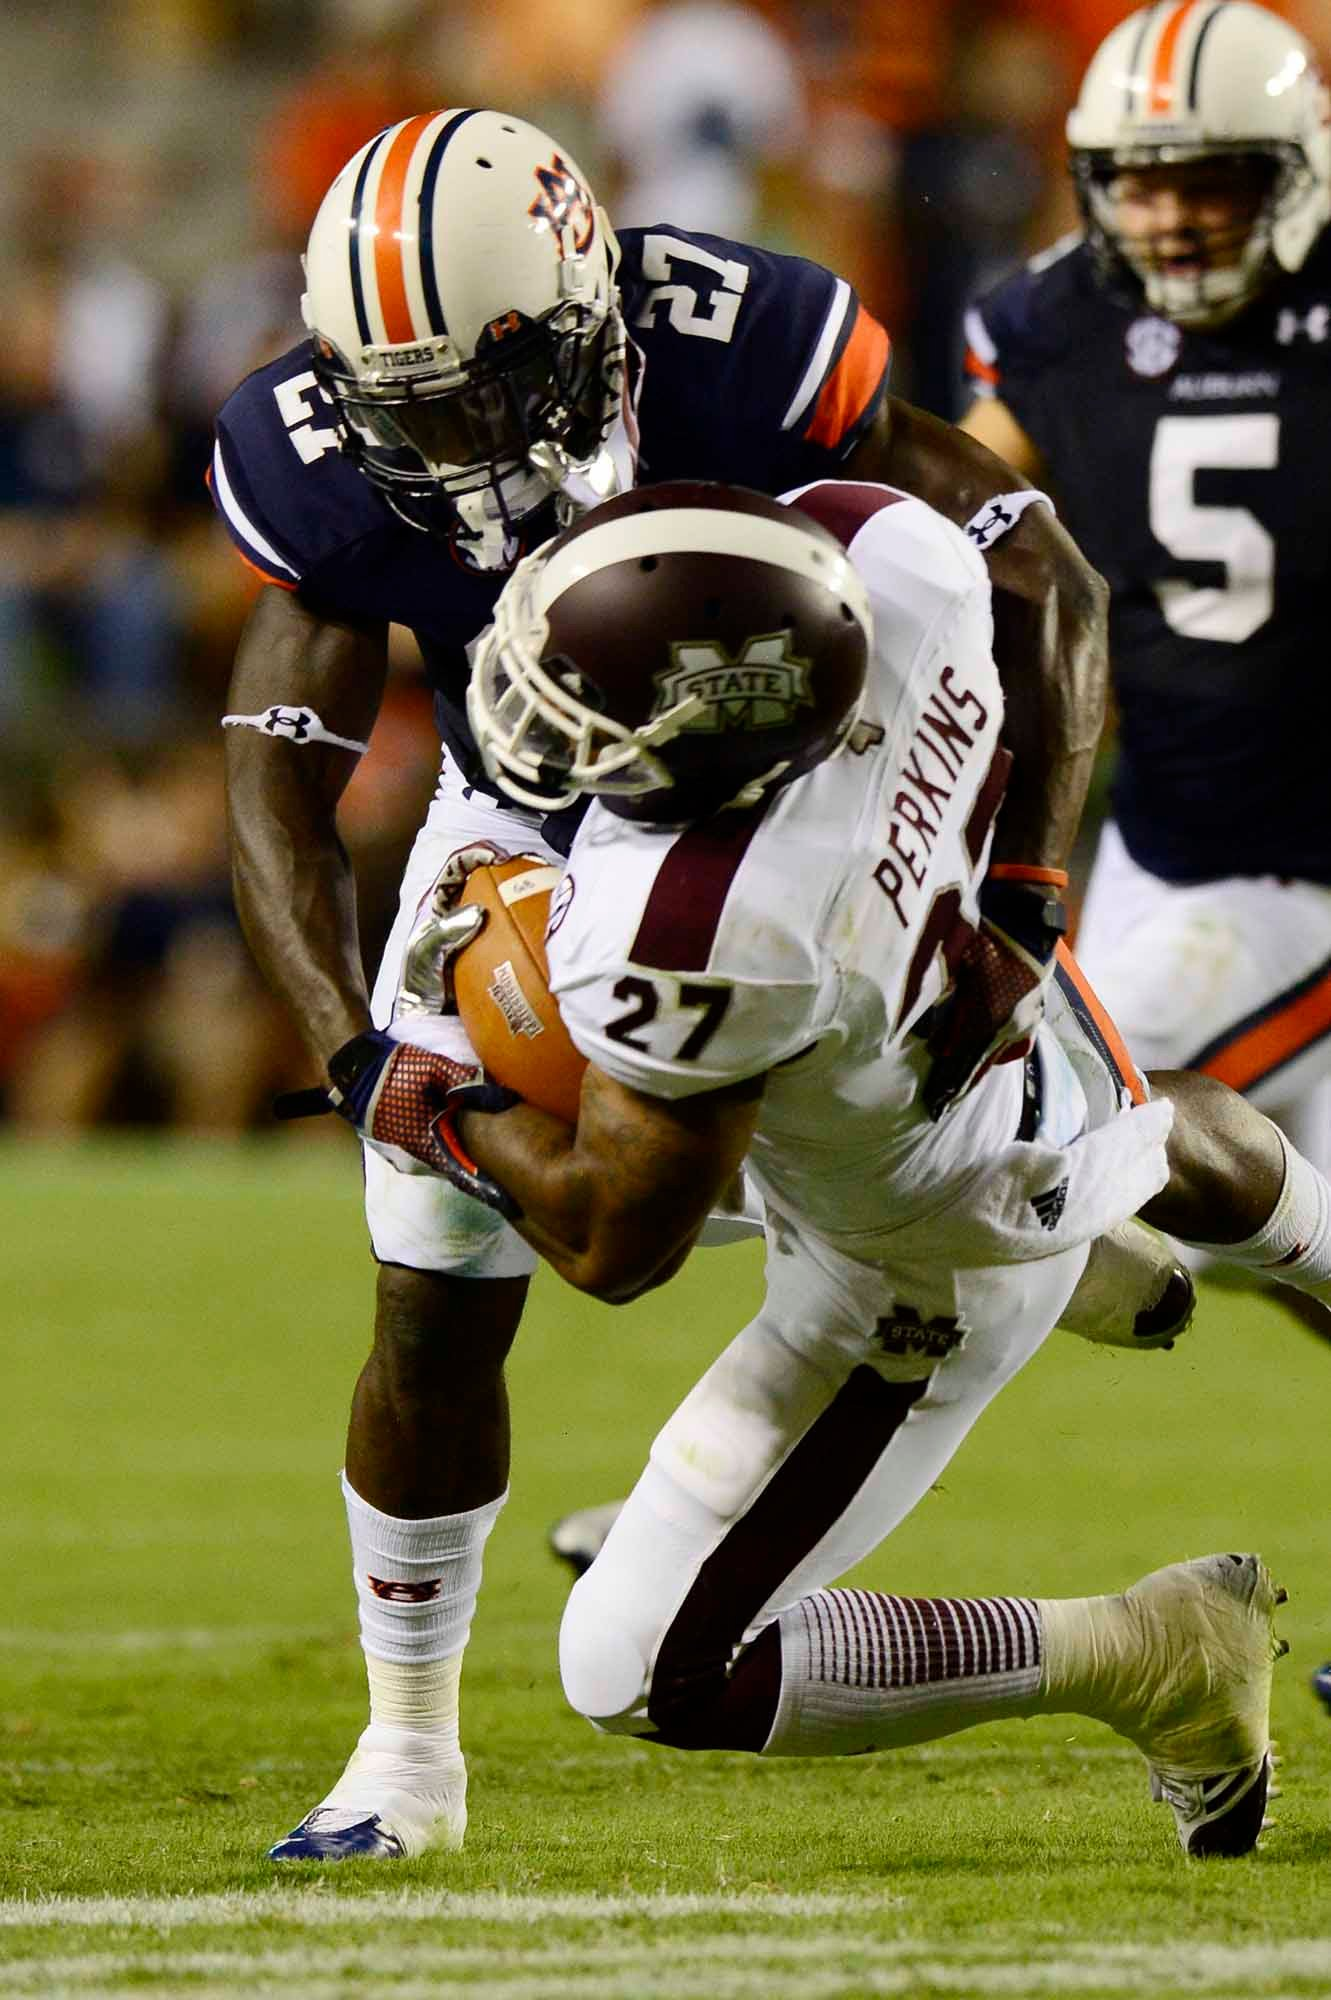 Mississippi State's offense is reeling from the loss of quarterback Tyler Russell. (Source: Todd van Emst/Auburn University)